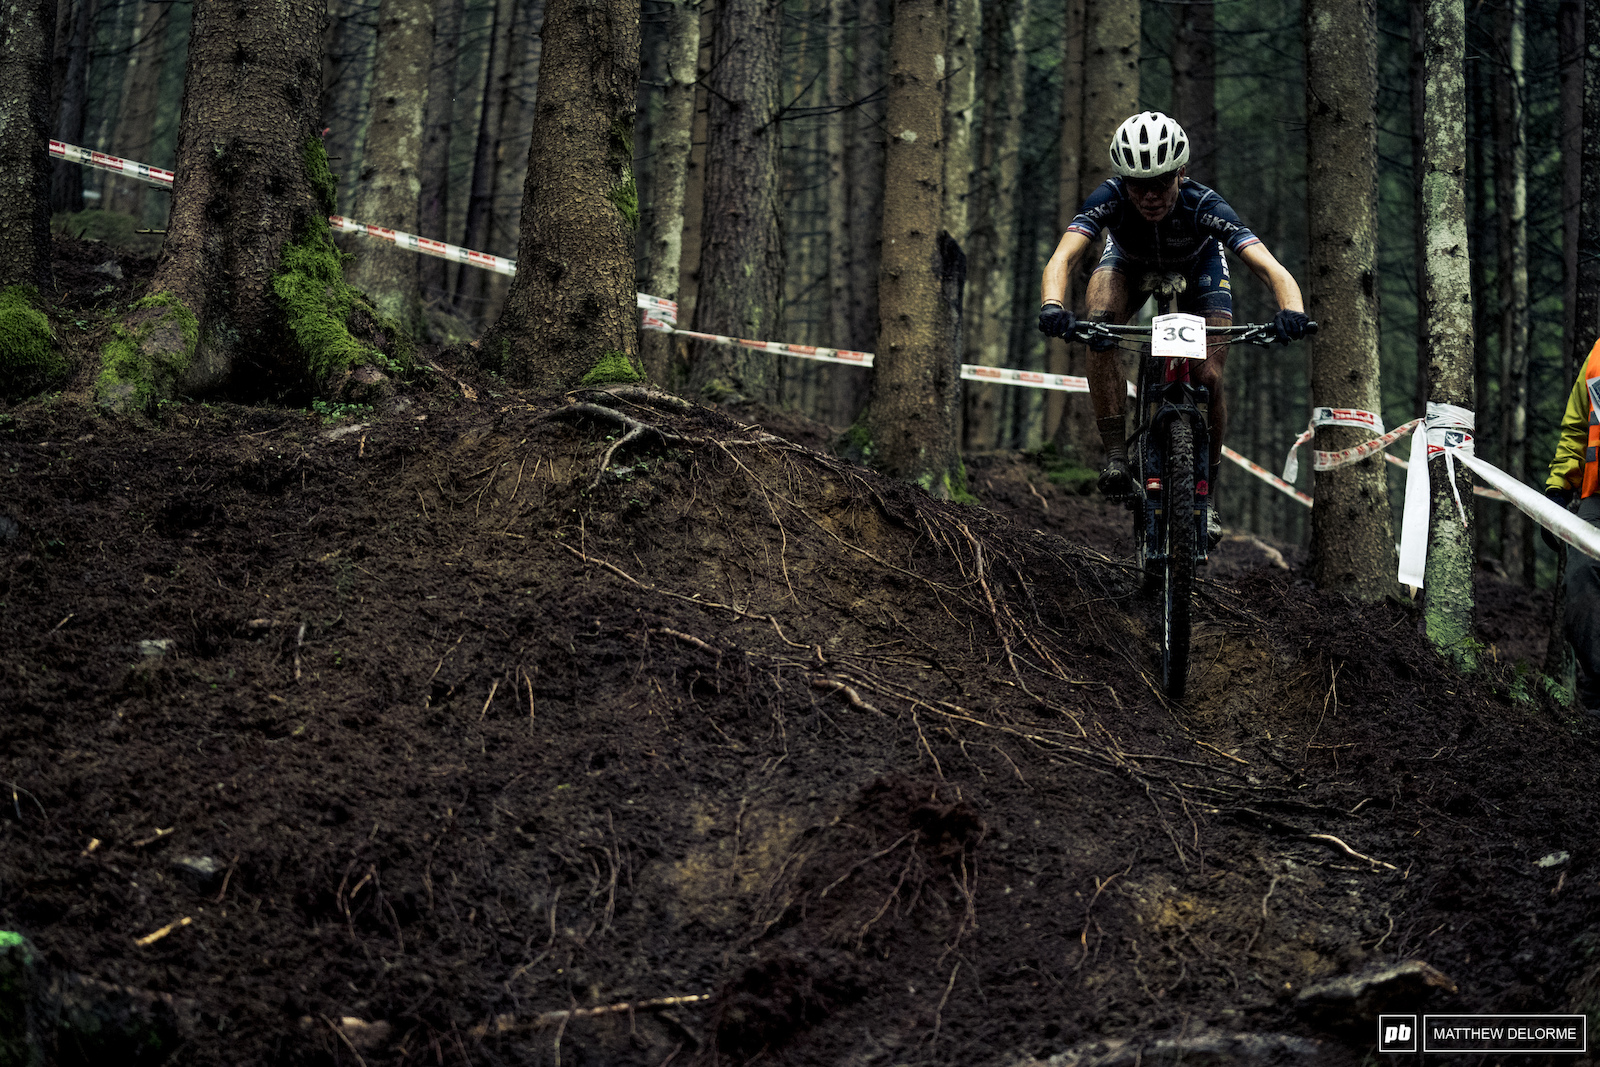 France has been utterly dominant in all disciplines of MTB lately.